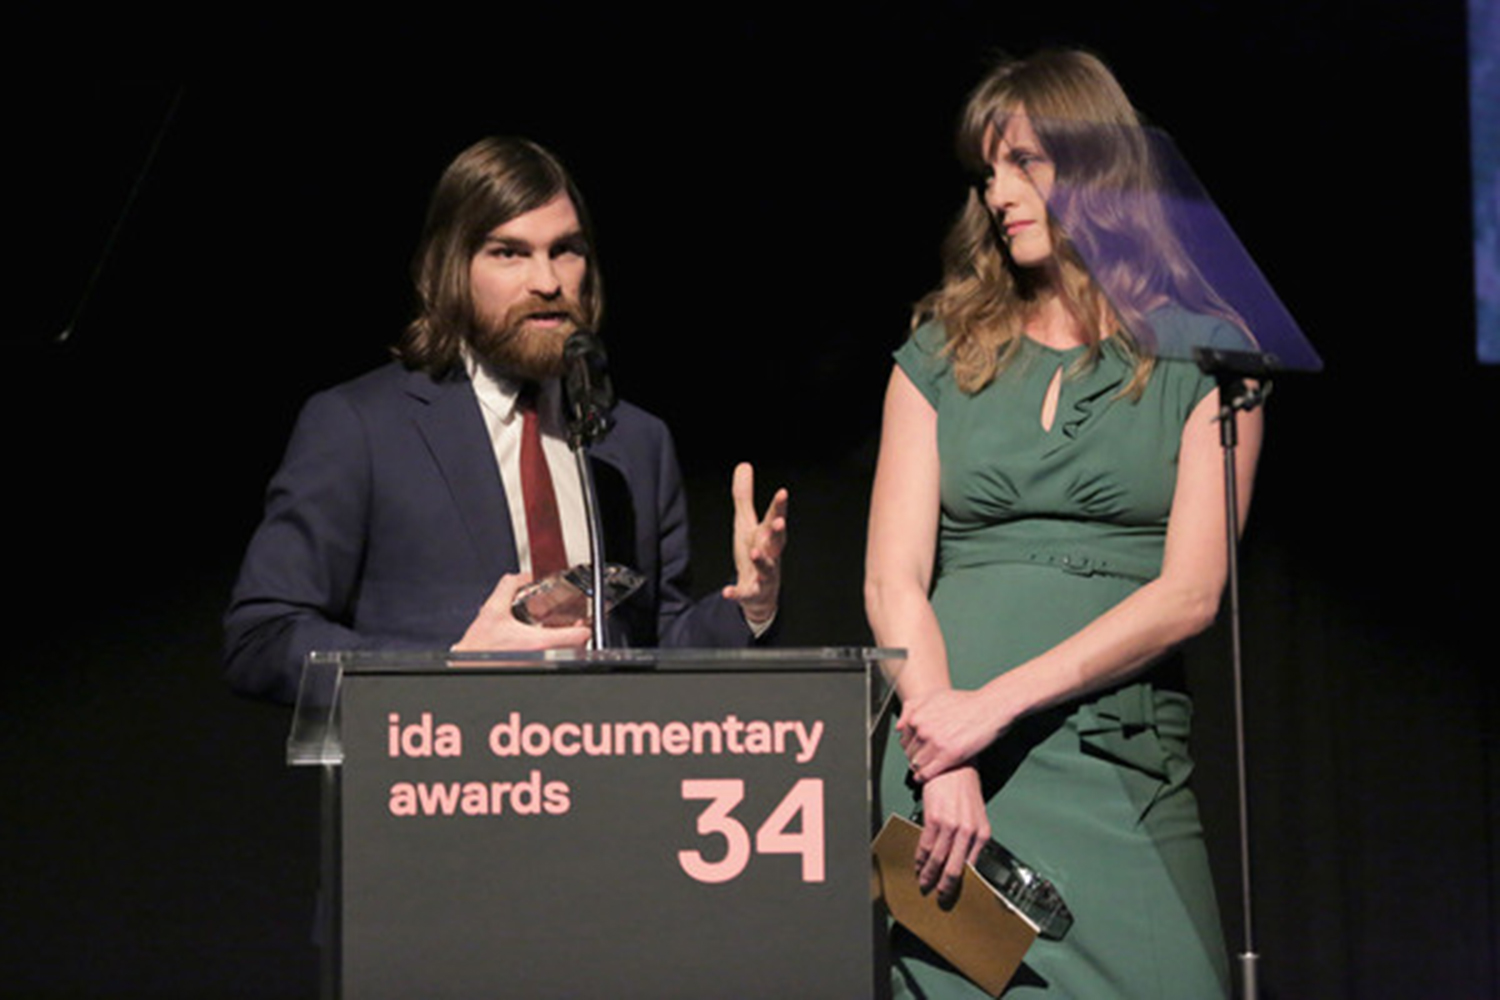 Andy Mills and Larissa Anderson, winners of the first Best Audio Documentary Award for 'Caliphate' speak onstage during the 2018 IDA Documentary Awards. Photo by Rebecca Sapp